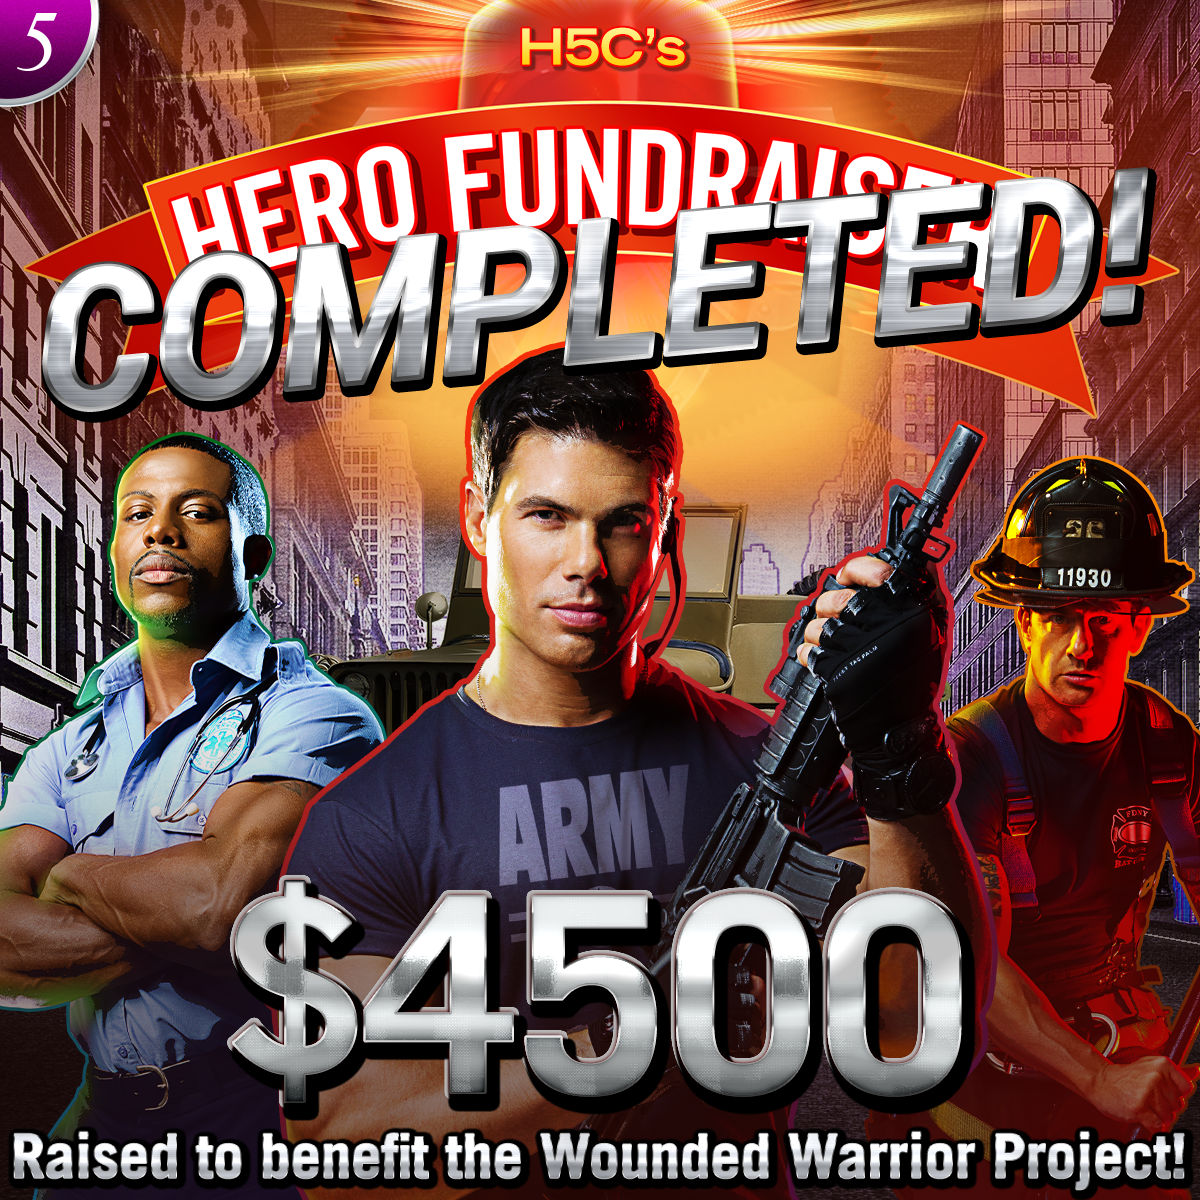 the wounded warrior project Join us saturday, nov 9th from 1-2pm for a wounded warrior project push-up contest click the link to learn more, sign-up and donate to the wounded warrior project.